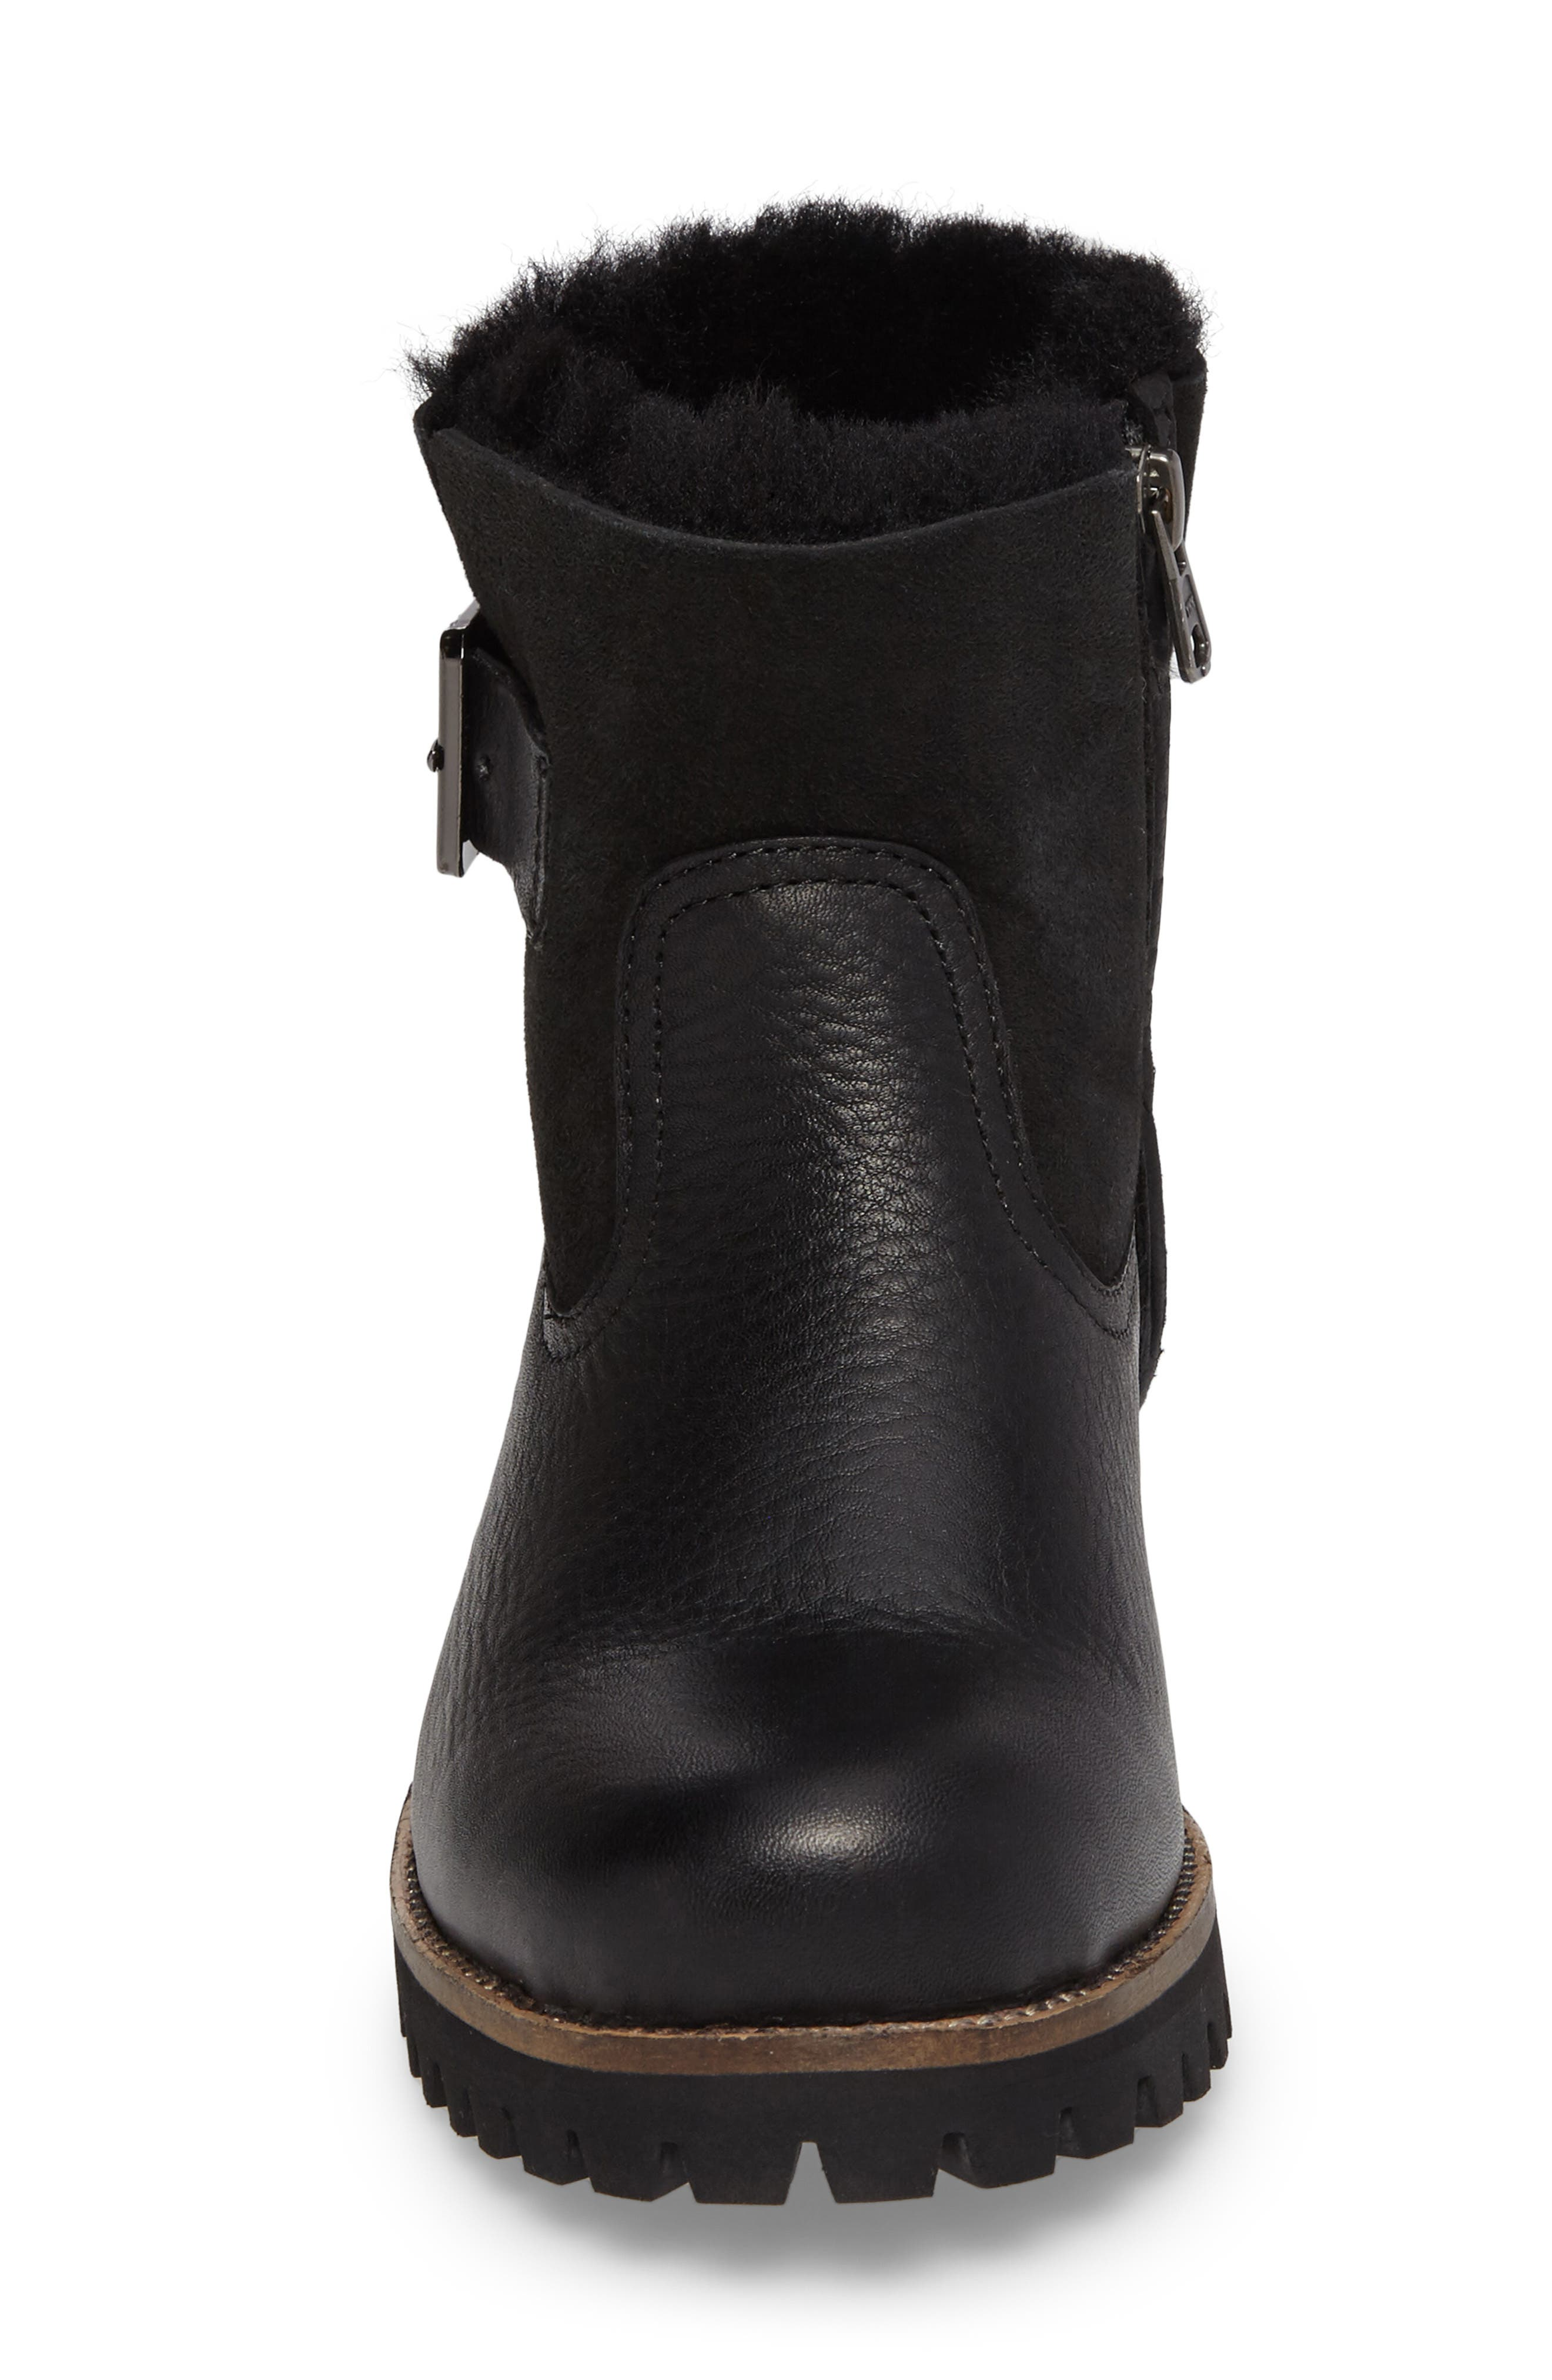 OL06 Genuine Shearling Lined Bootie,                             Alternate thumbnail 4, color,                             Black Leather